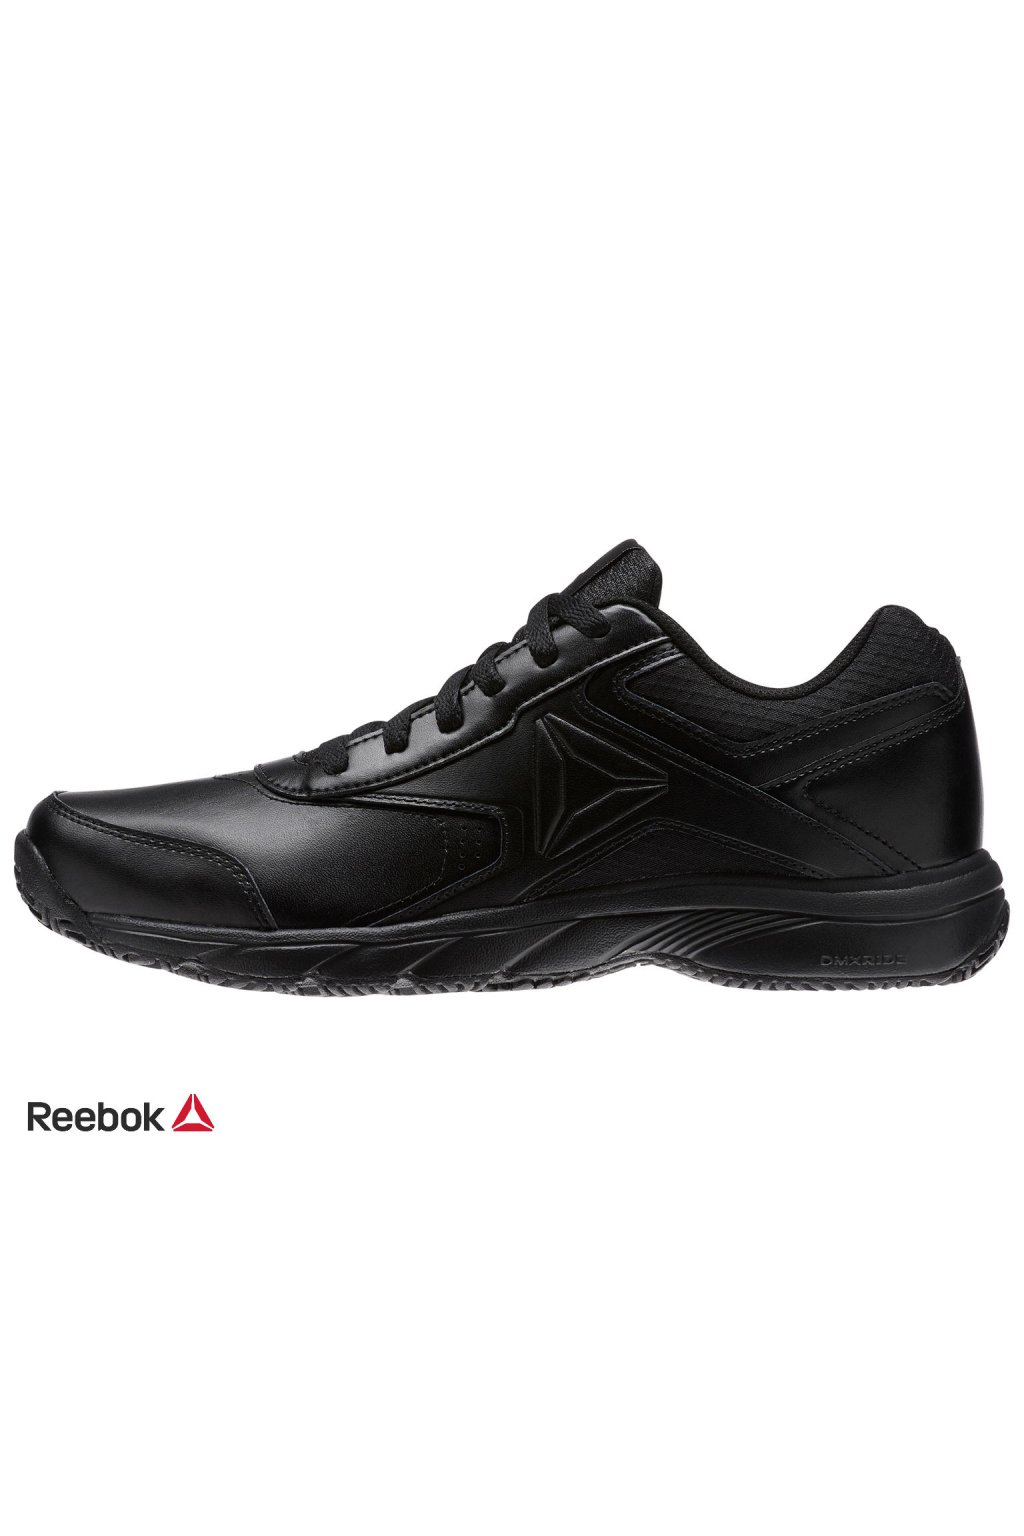 bs9524 univerzalna panska obuv reebok work cushion